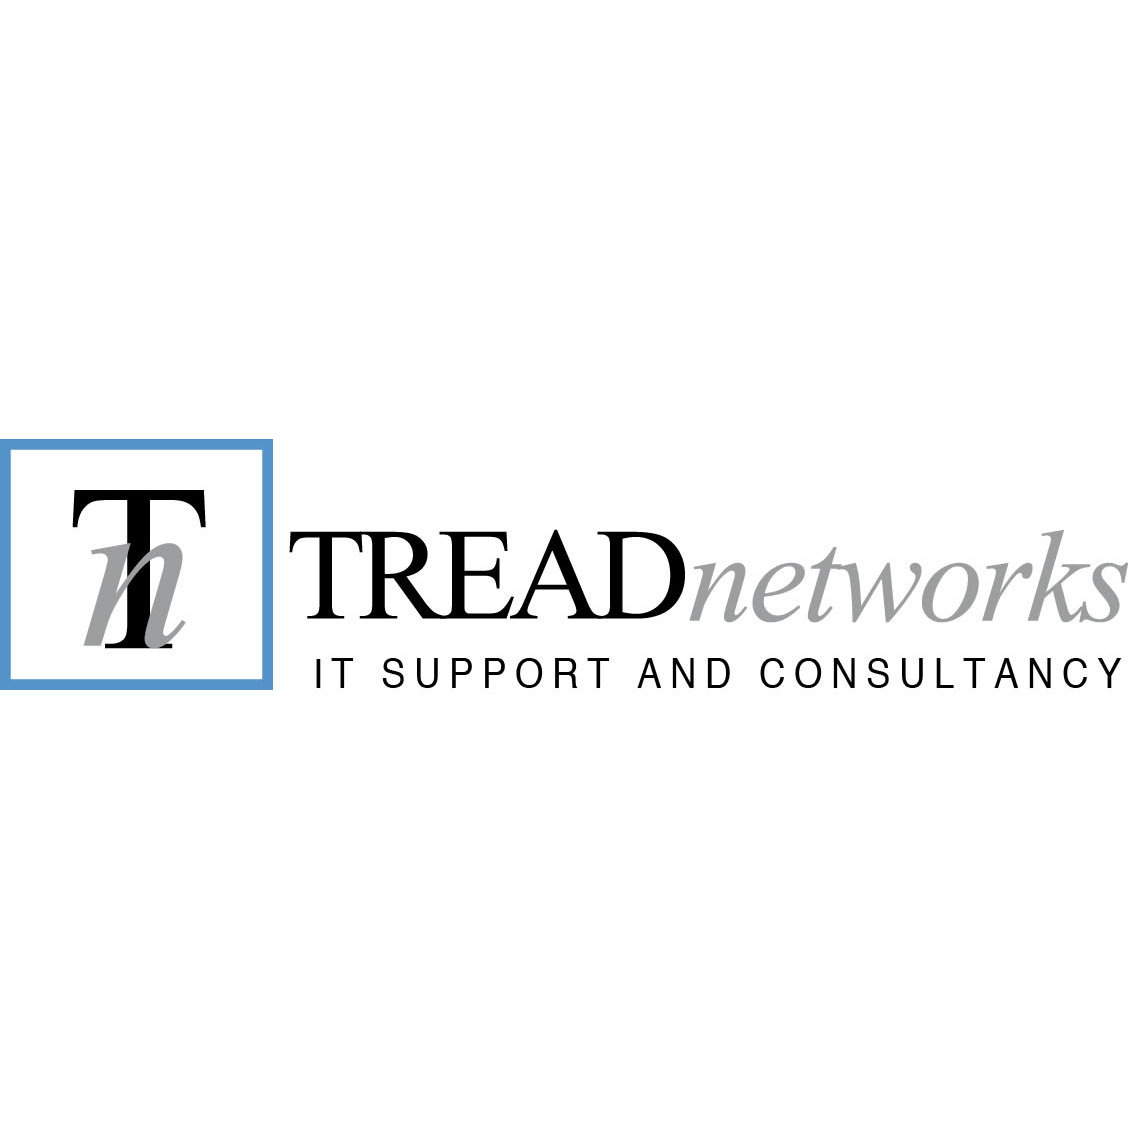 Tread Networks Ltd - Uxbridge, London UB10 8LJ - 08006 122923 | ShowMeLocal.com